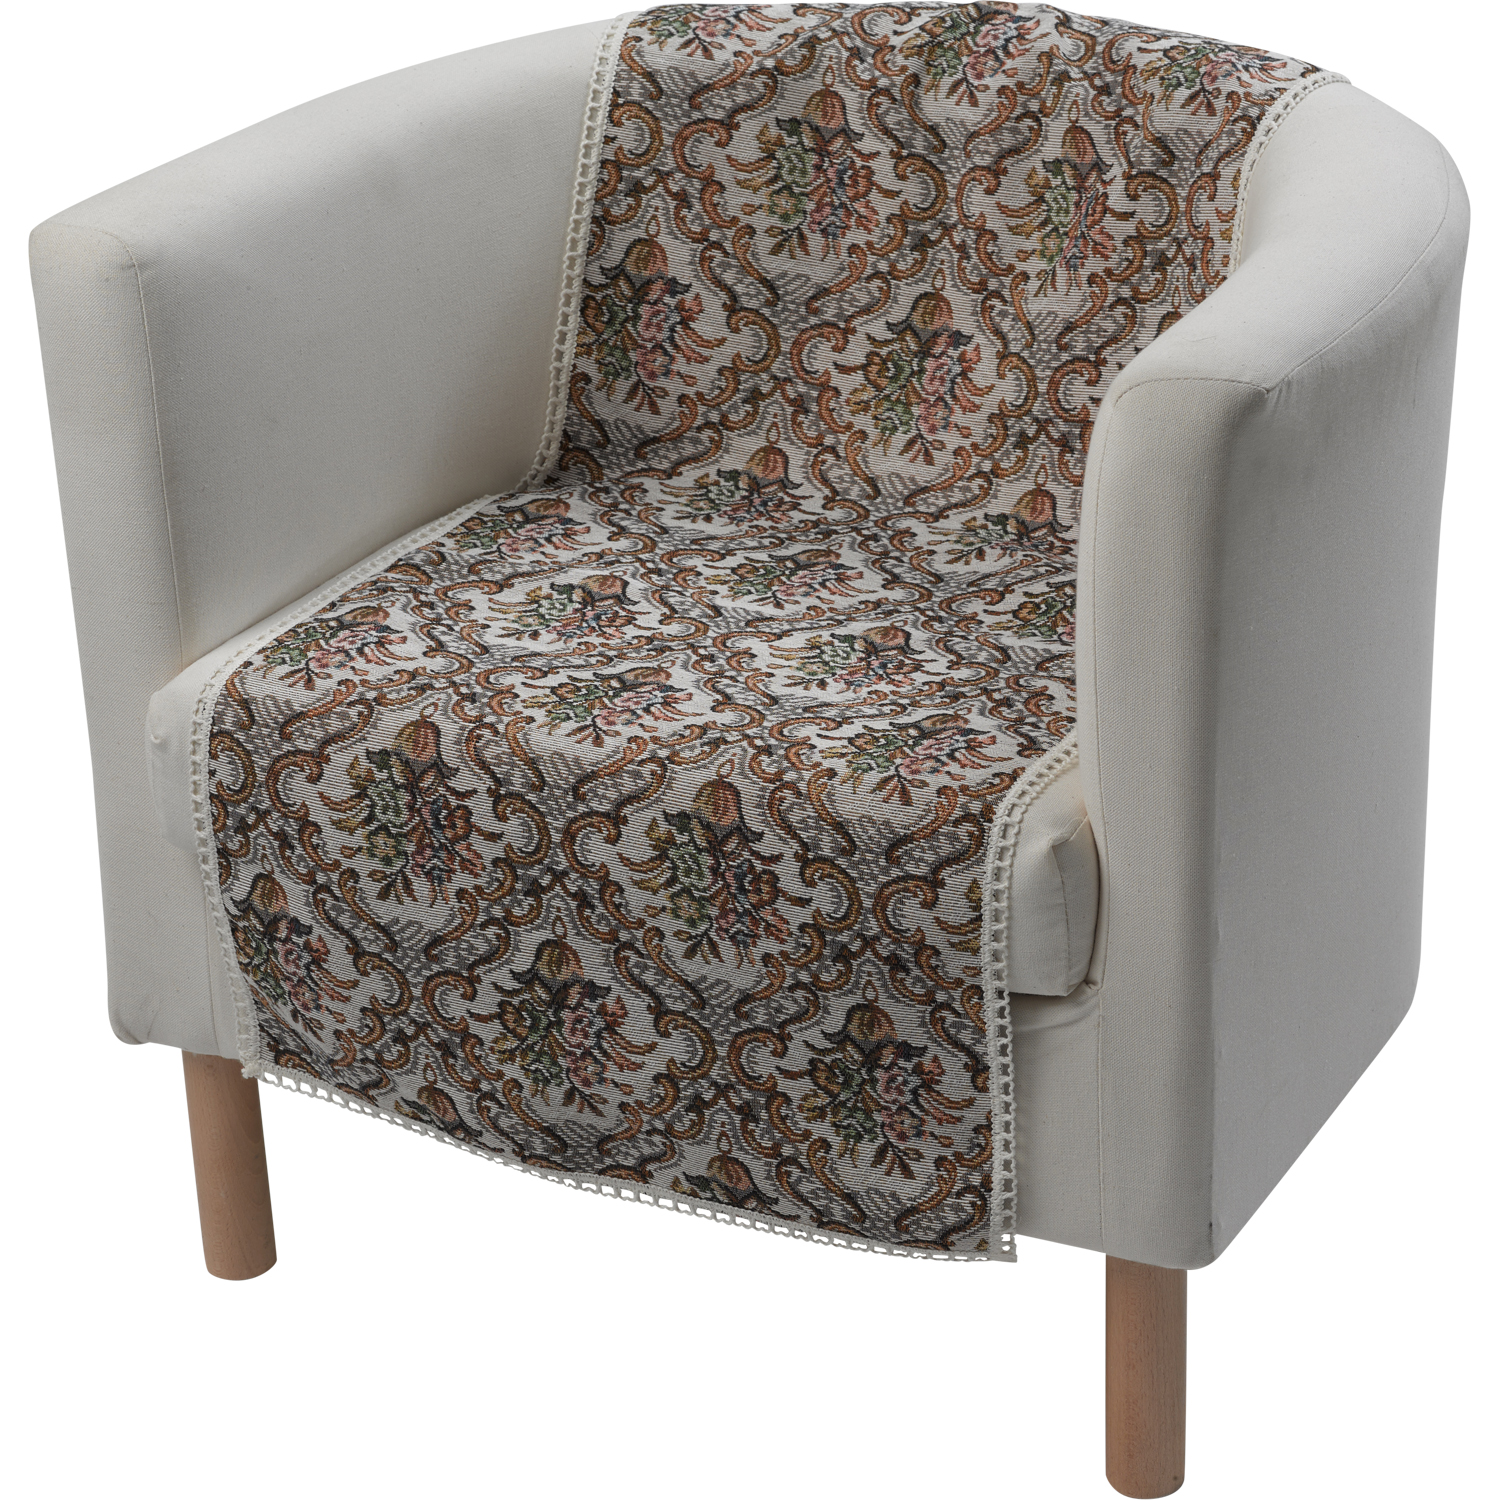 Furniture Chair Protector Floral Tapestry Decorative Lace